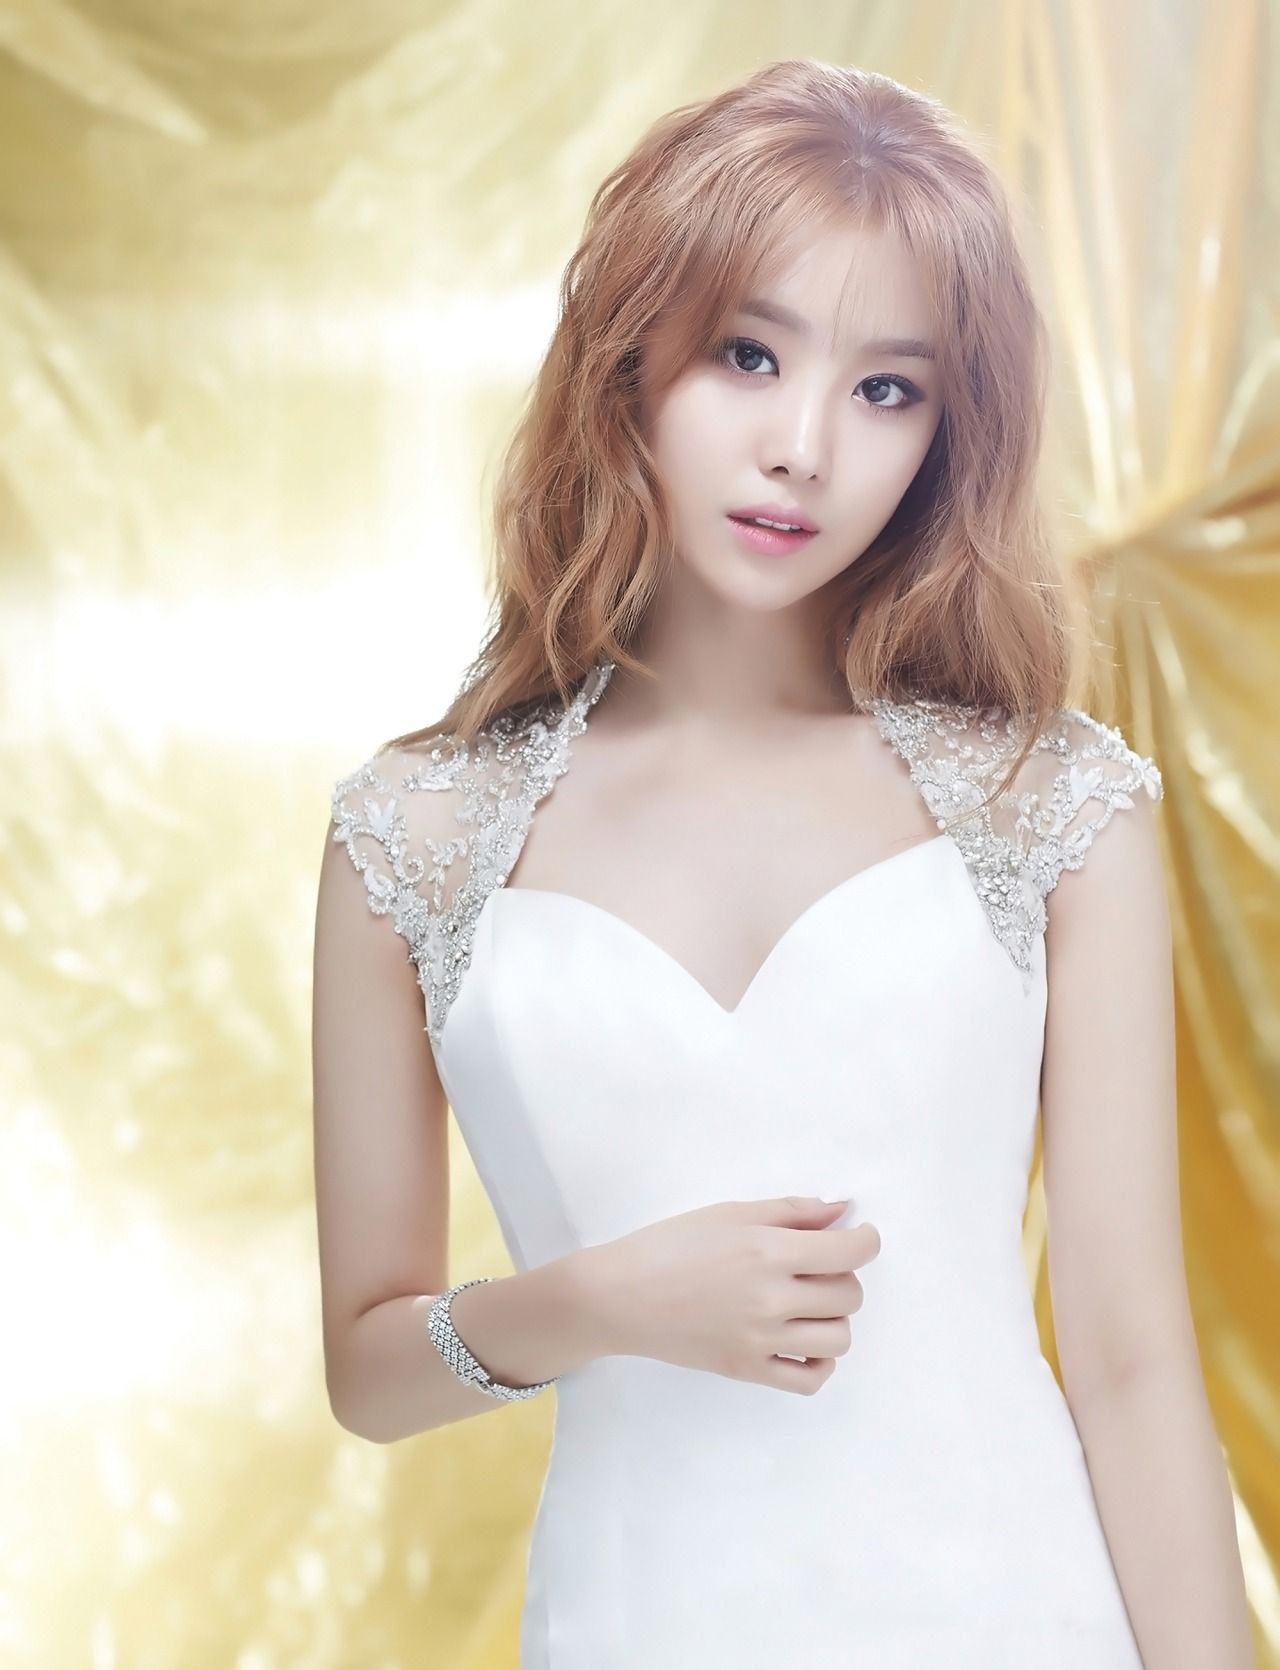 Song Ji Eun for Wedding21 Korea | Kpop/Korean Girls | Pinterest | Korea Songs and Kpop